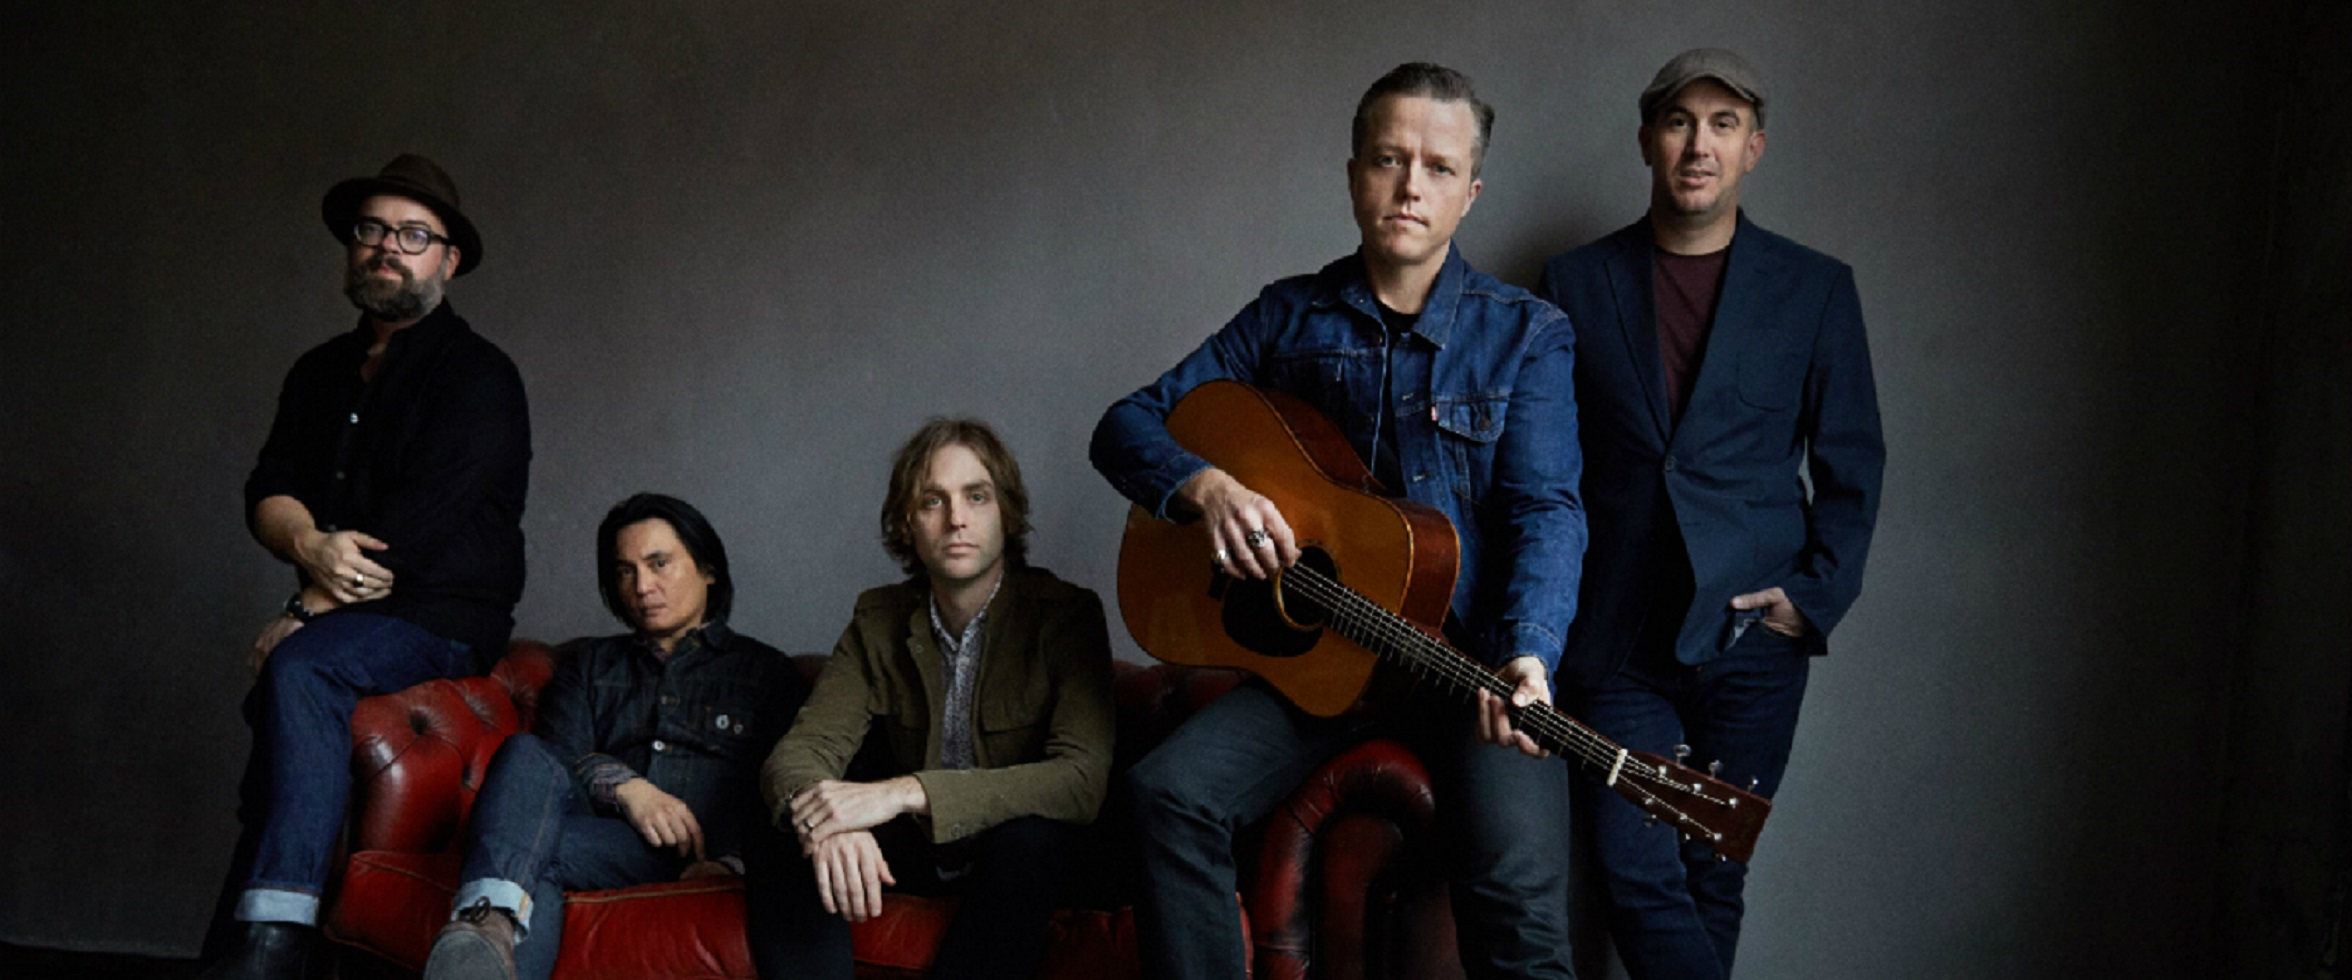 Jason Isbell and The 400 Unit at Red Rocks Amphitheatre On 9/3